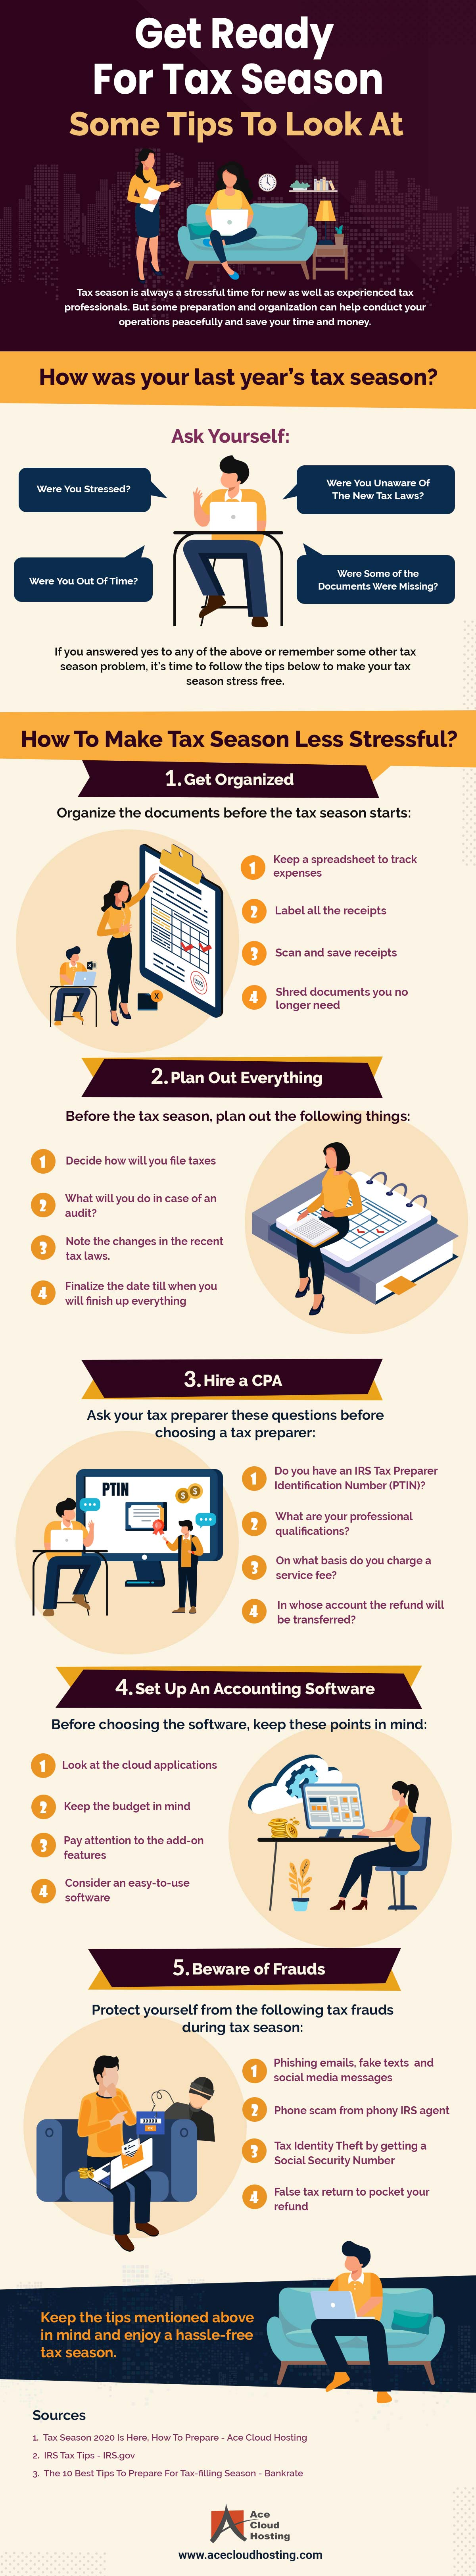 [Infographic] 5 Tips to Get Ready for Tax Season Now